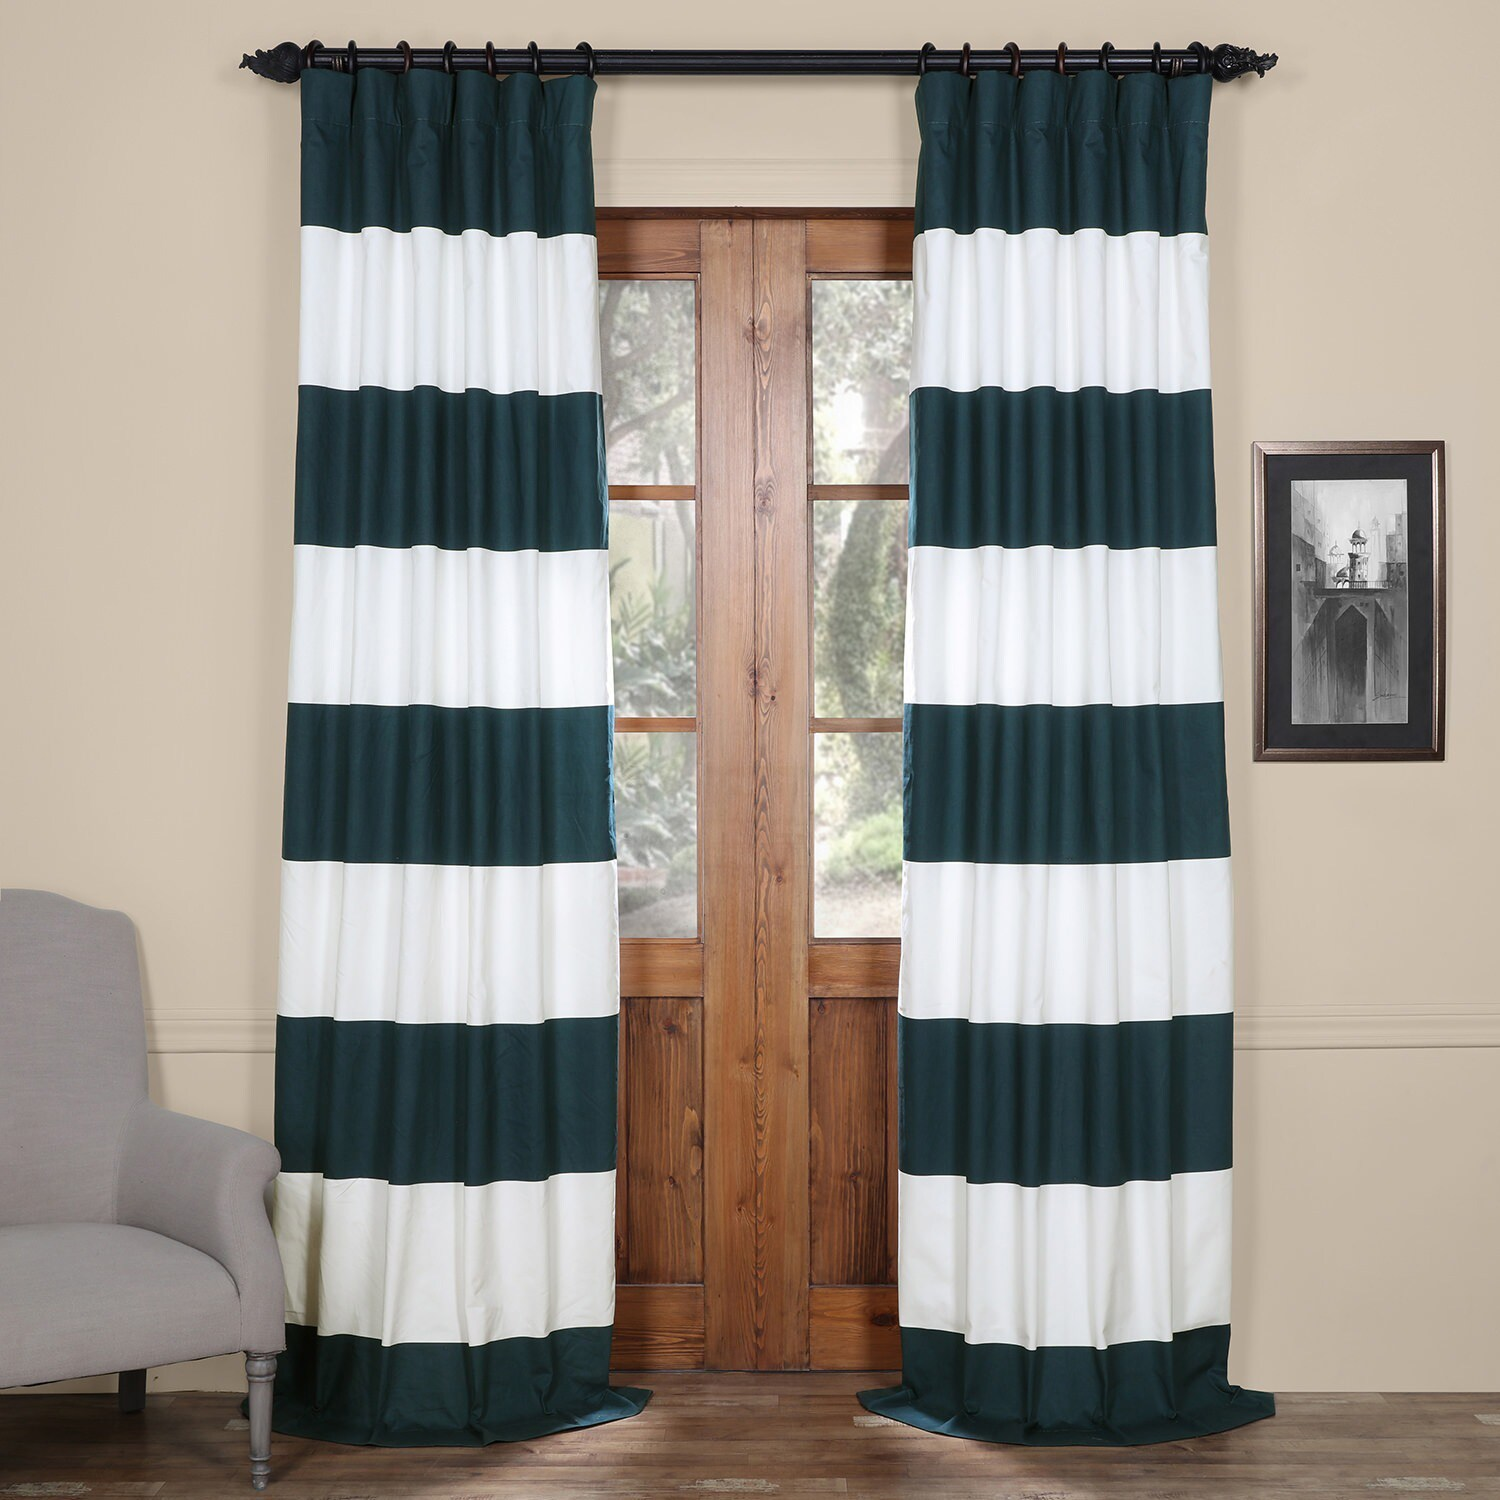 Cotton Curtain Panels Details About Exclusive Fabrics Cabana Cotton Horizontal Stripe 108 Inch Curtain Panel 50 X